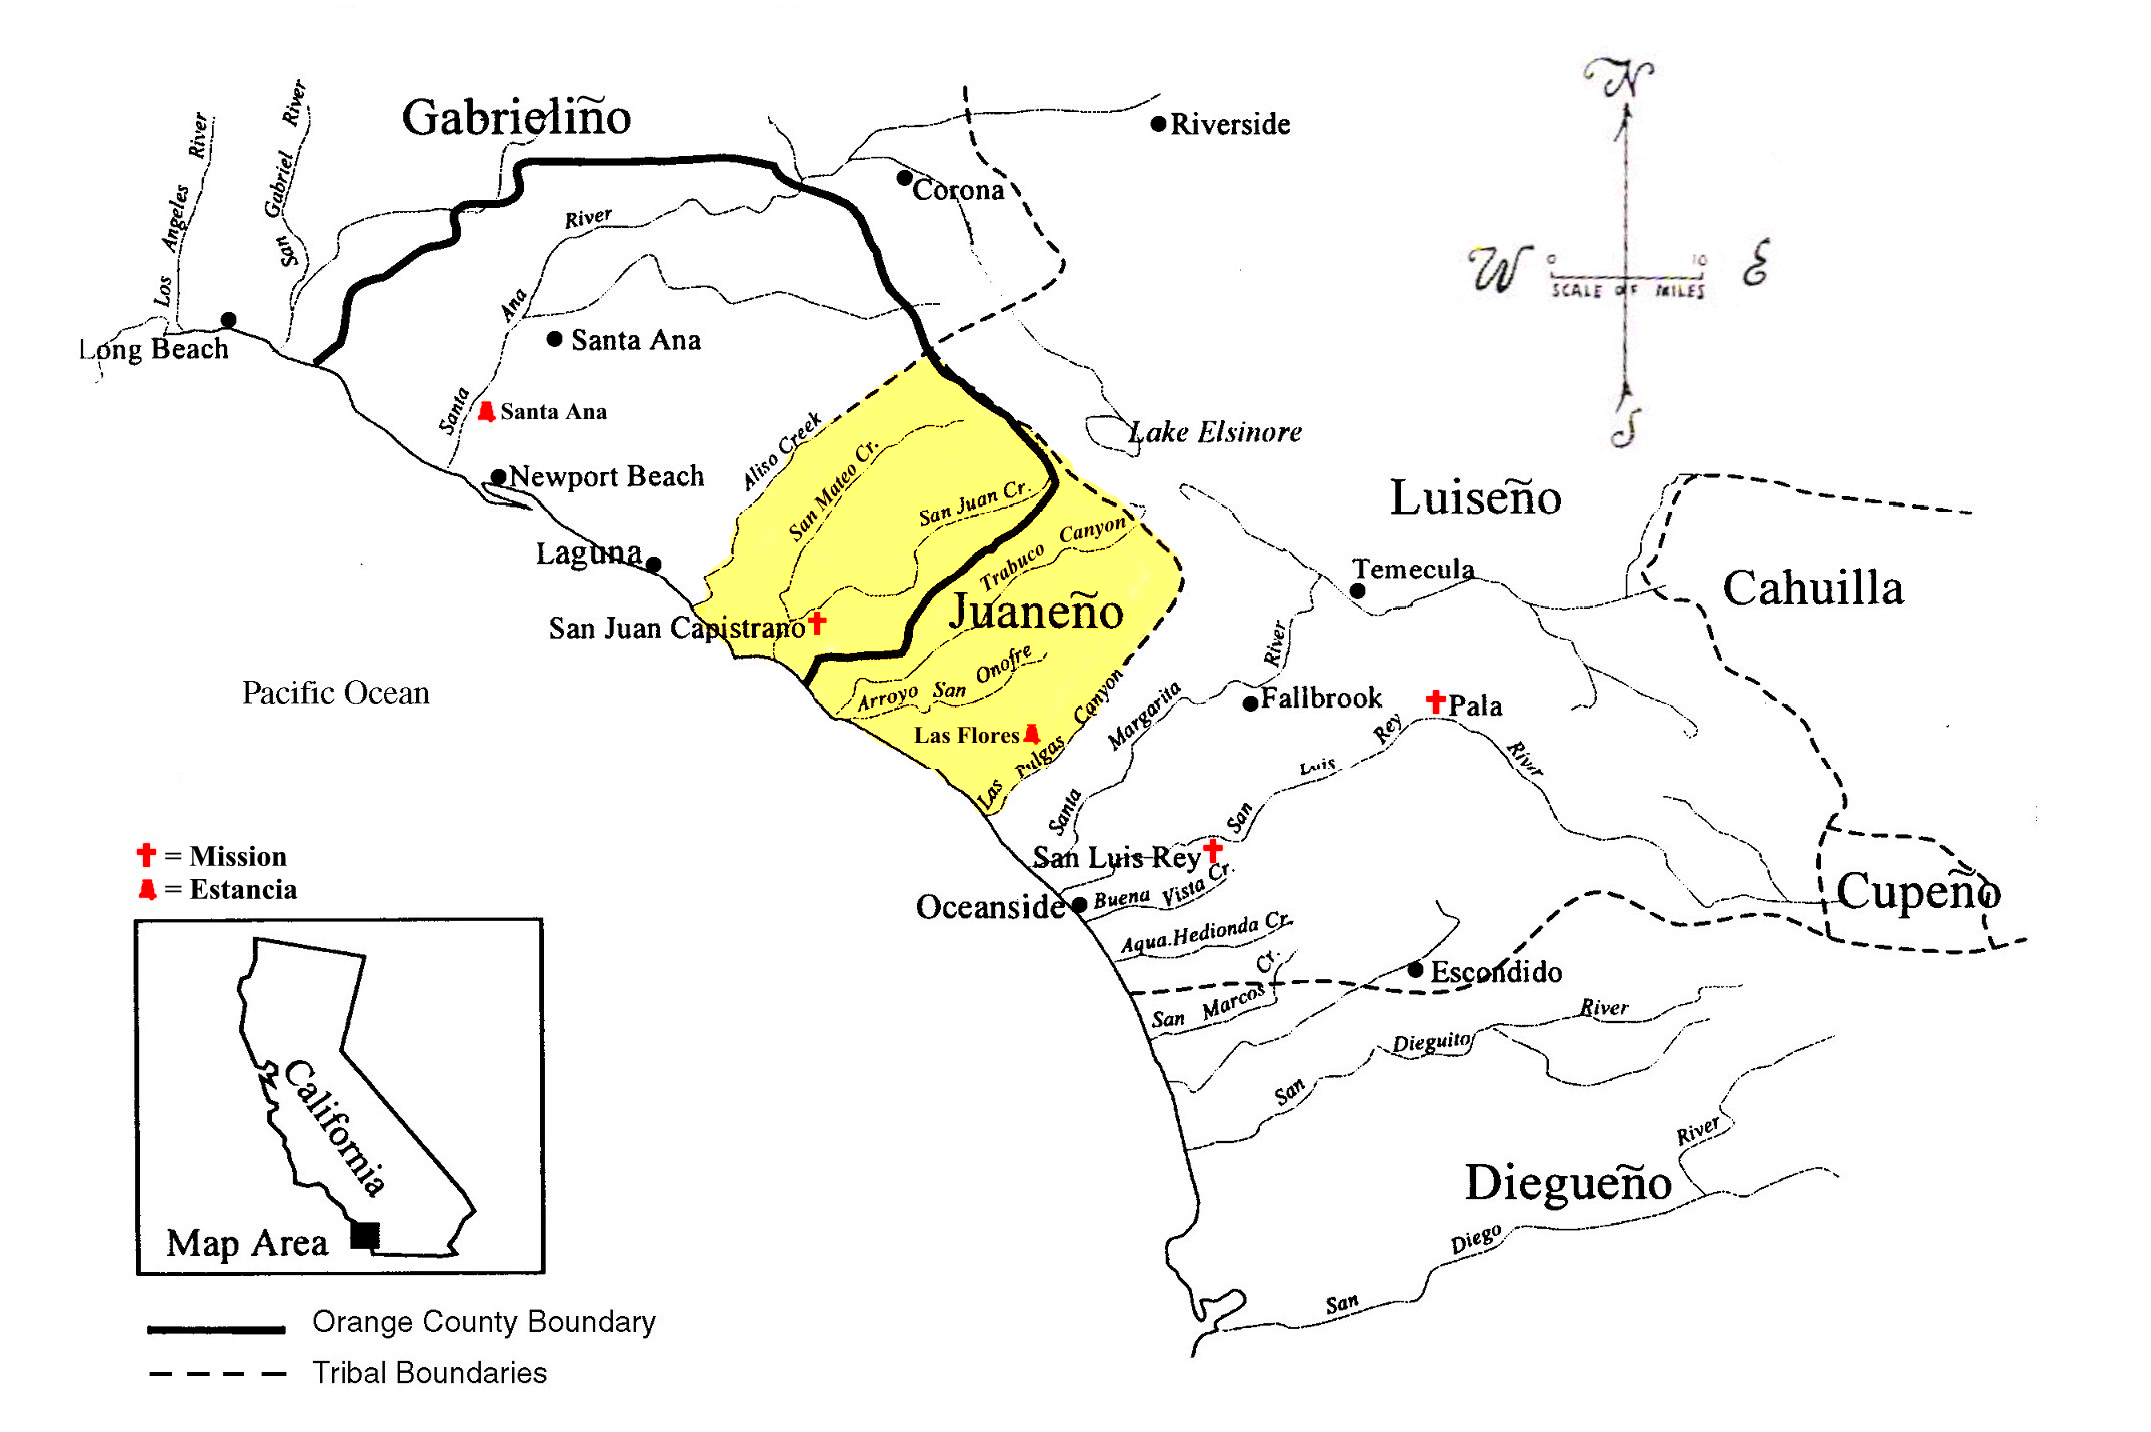 Missions In Southern California Map.File Southern California Indian Linguistic Groups Juaneno Png